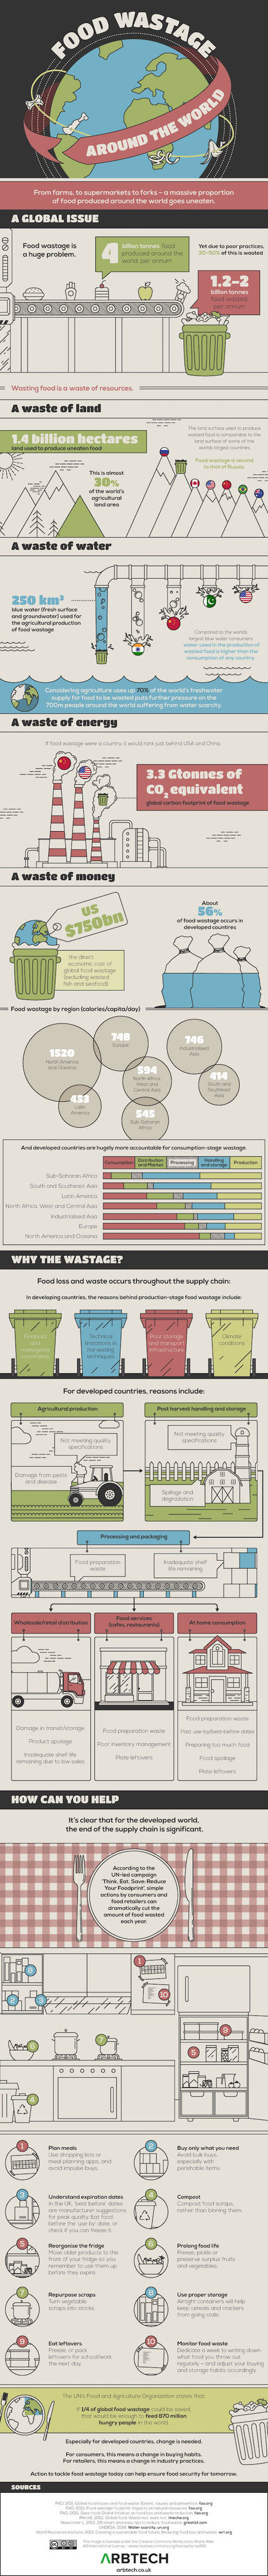 INFOGRAPHIC: How food waste has become a huge global problem | IB GEOGRAPHY The geography of Food and Health PEMBROKE | Scoop.it